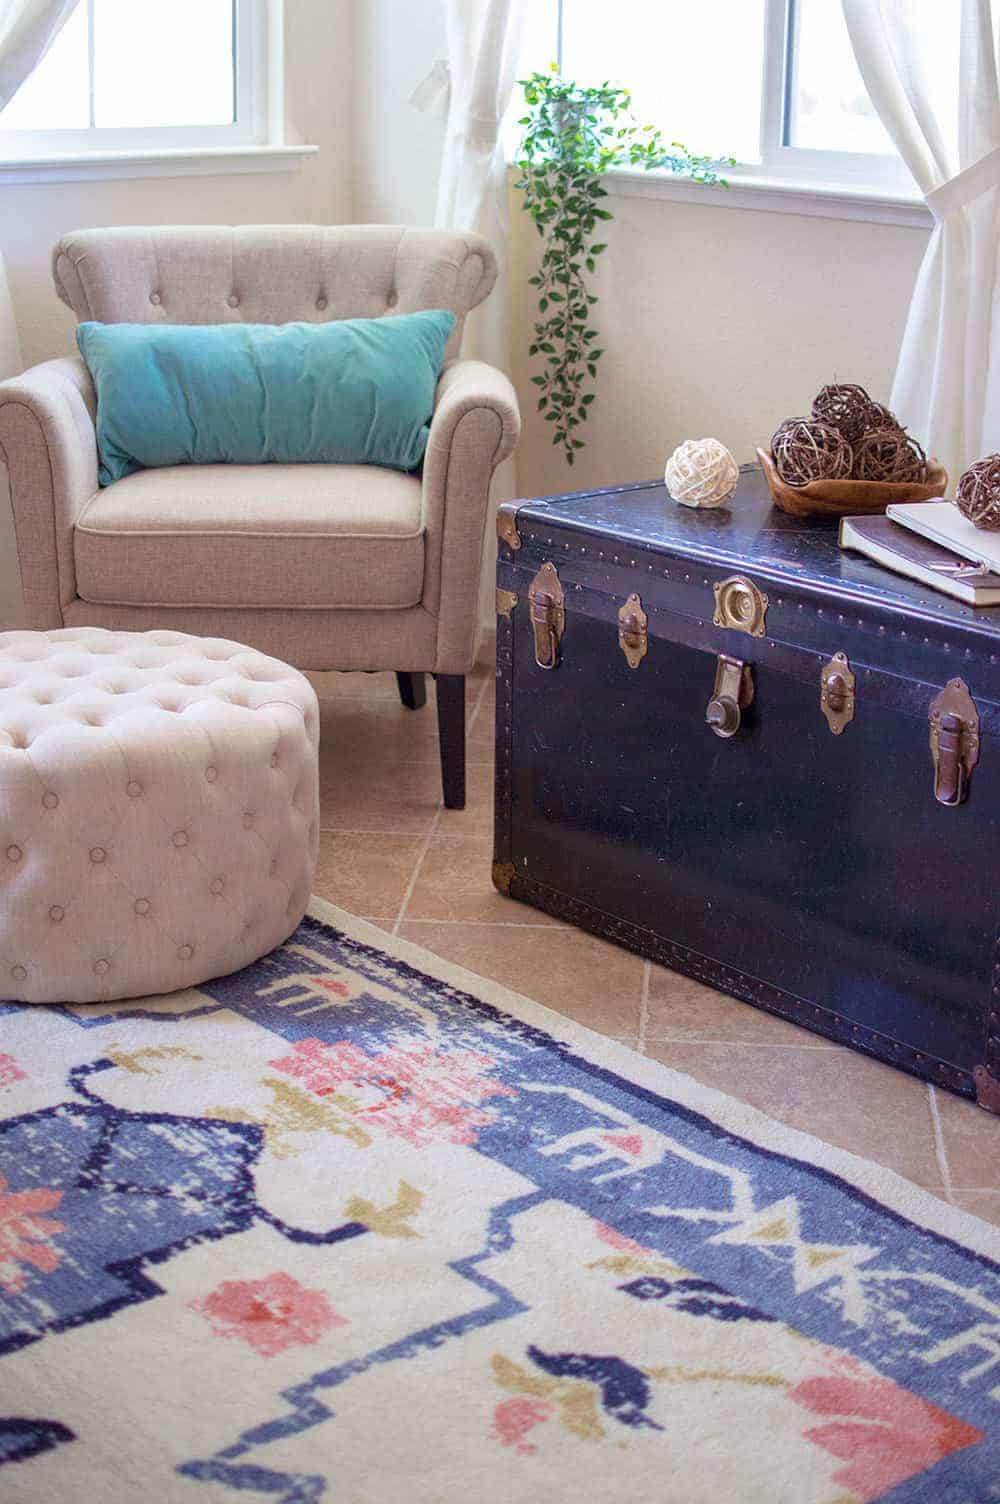 Corner of living room with vintage trunk used as side table, cream colored furniture, teal throw pillow and colorful vintage inspired rug